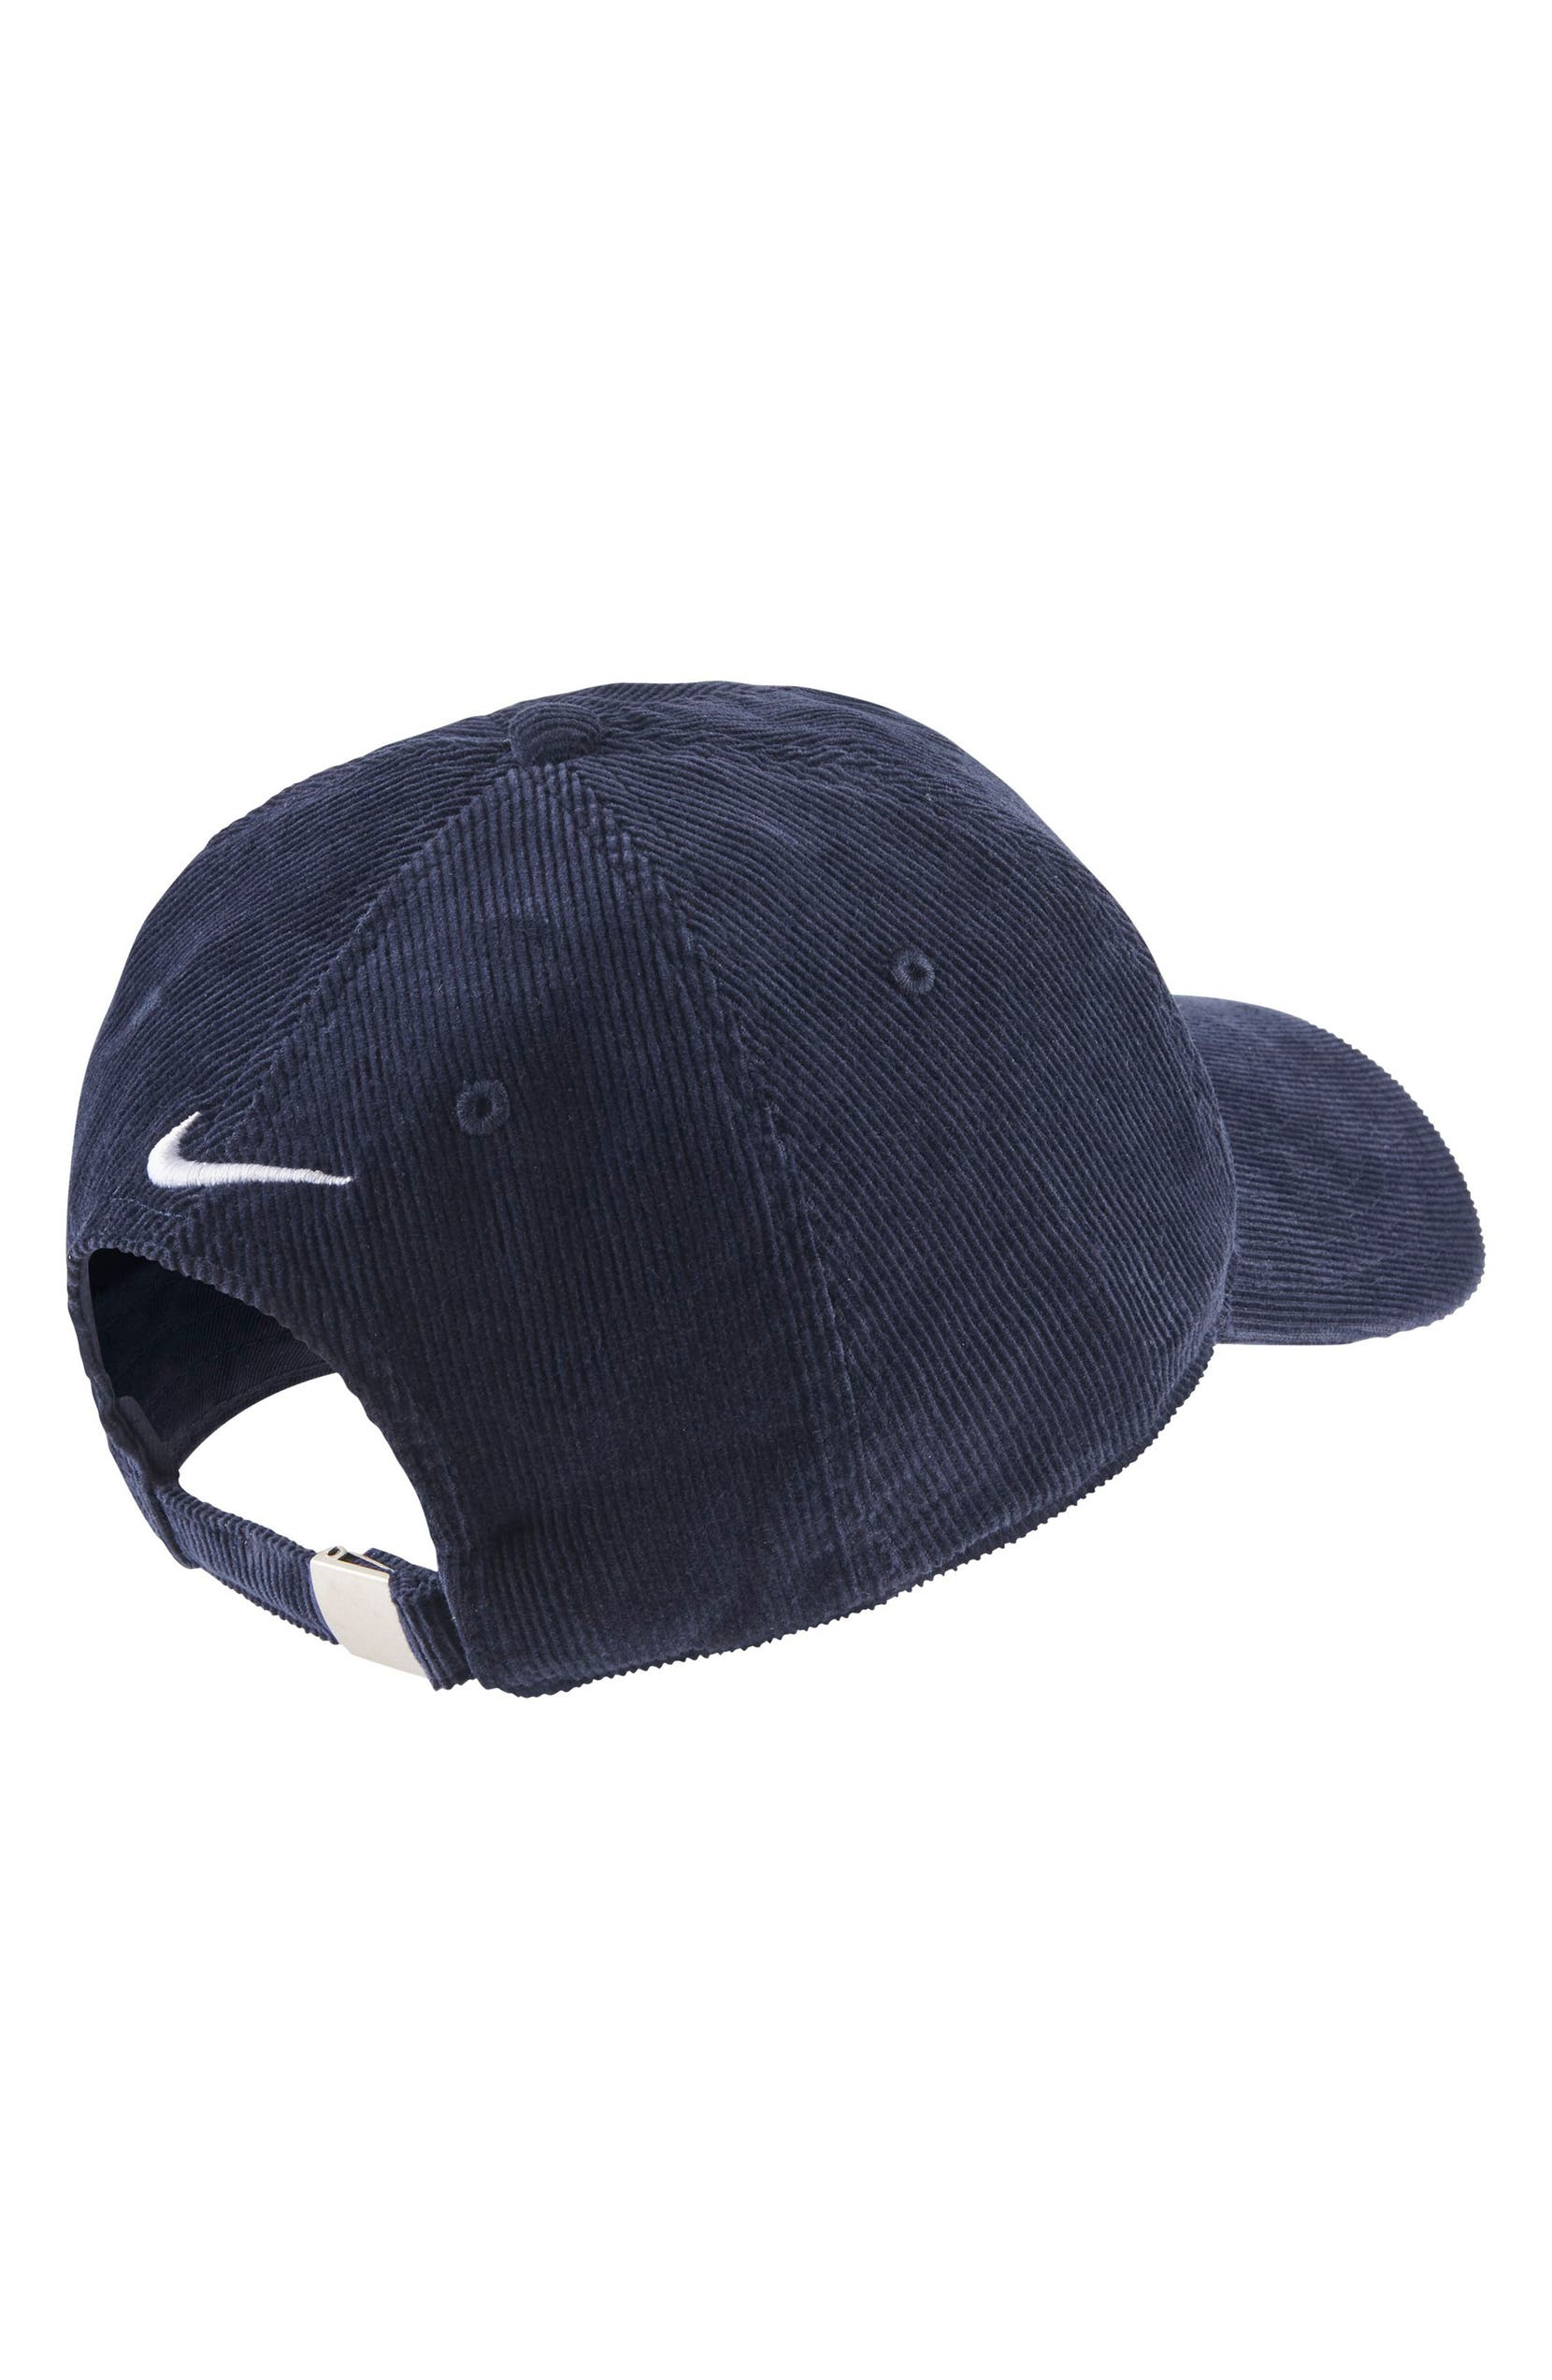 42ef45259a81 Nike H86 Just Do It Corduroy Cap